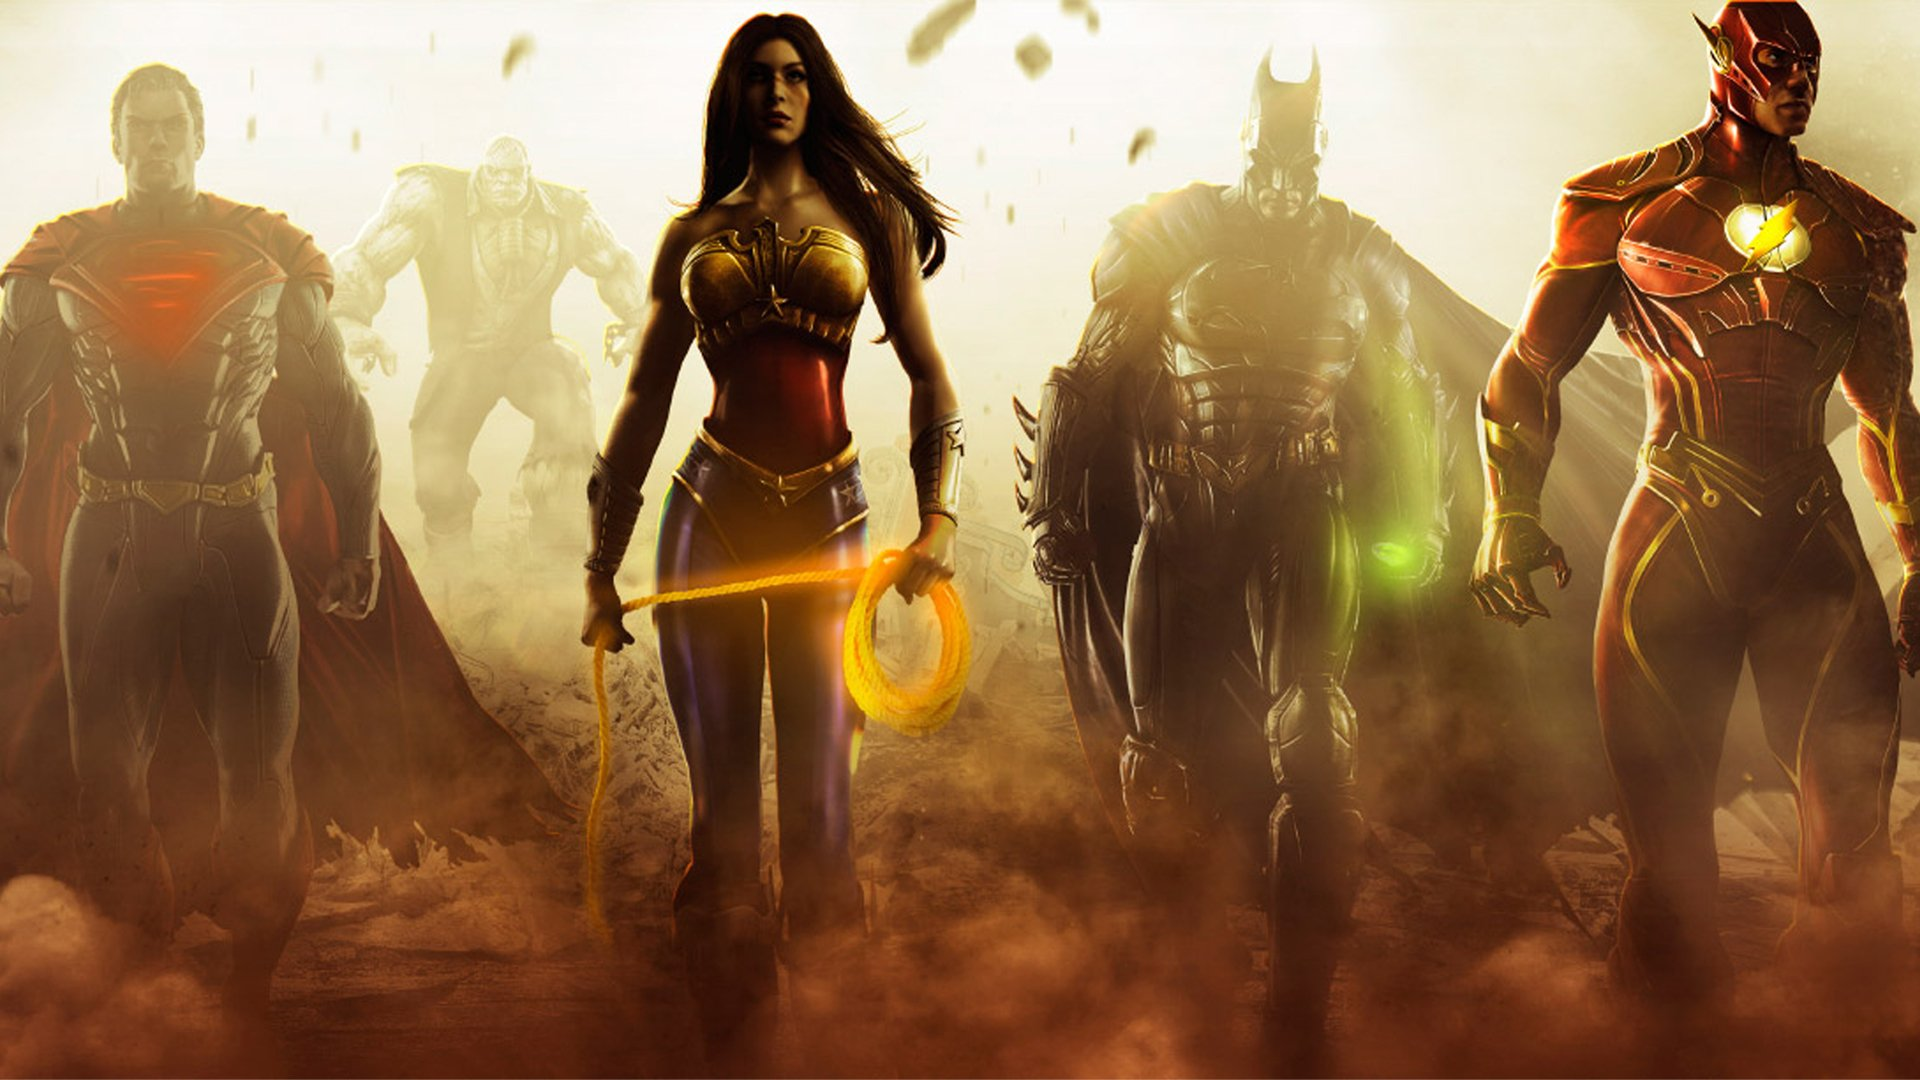 Injustice 3- Gods will Fall Release Date and Storyline